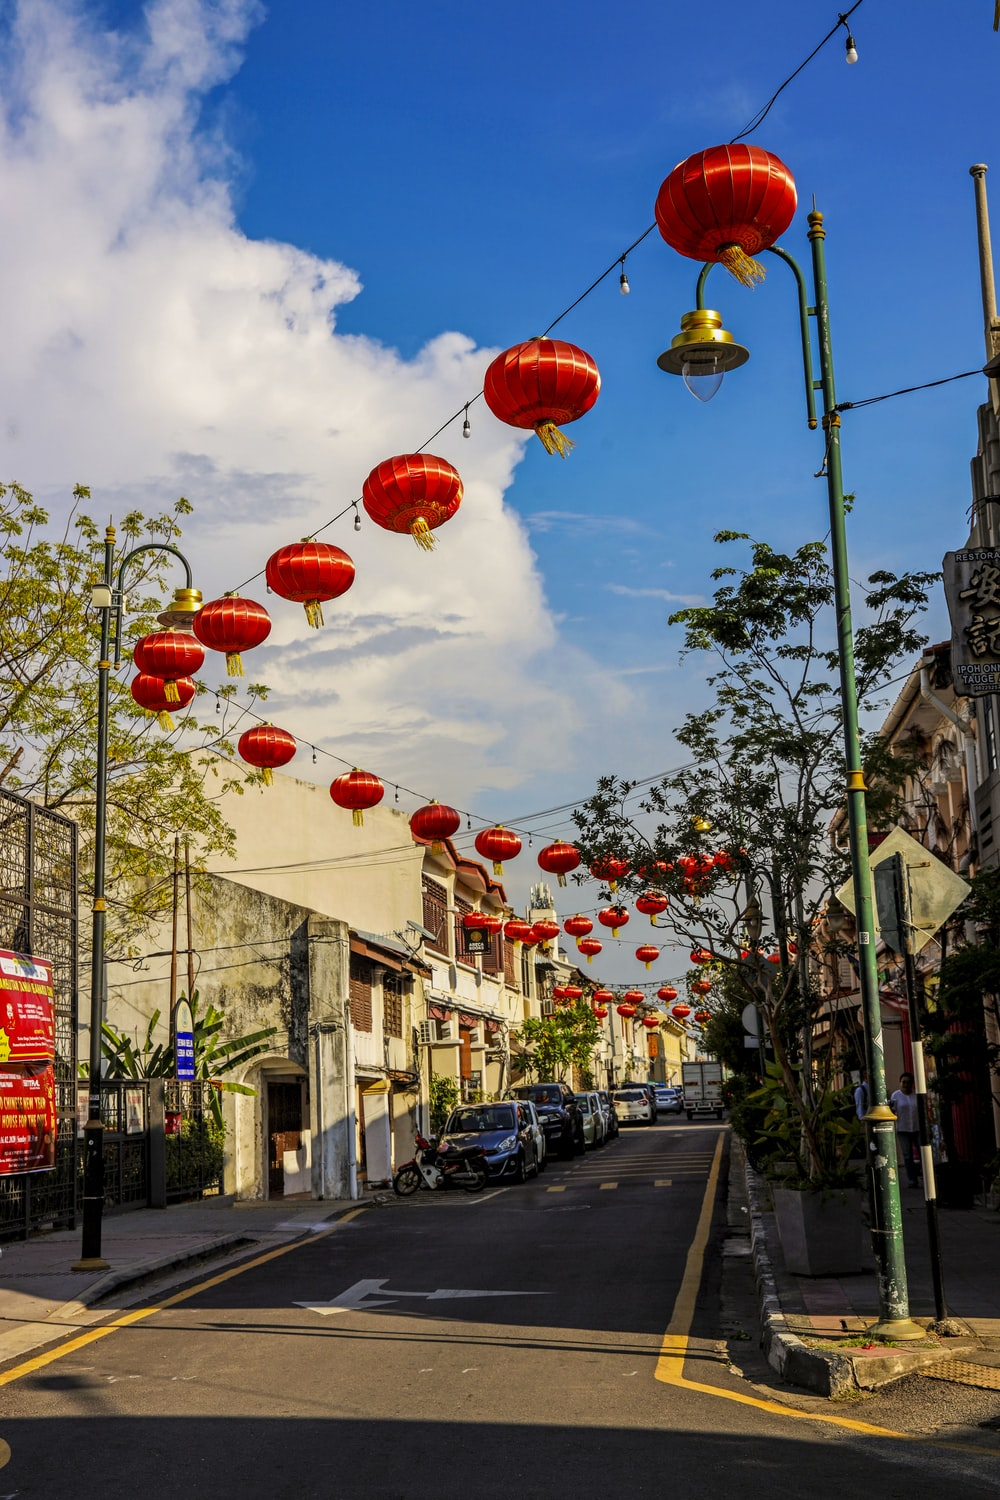 red and yellow lanterns on street during daytime